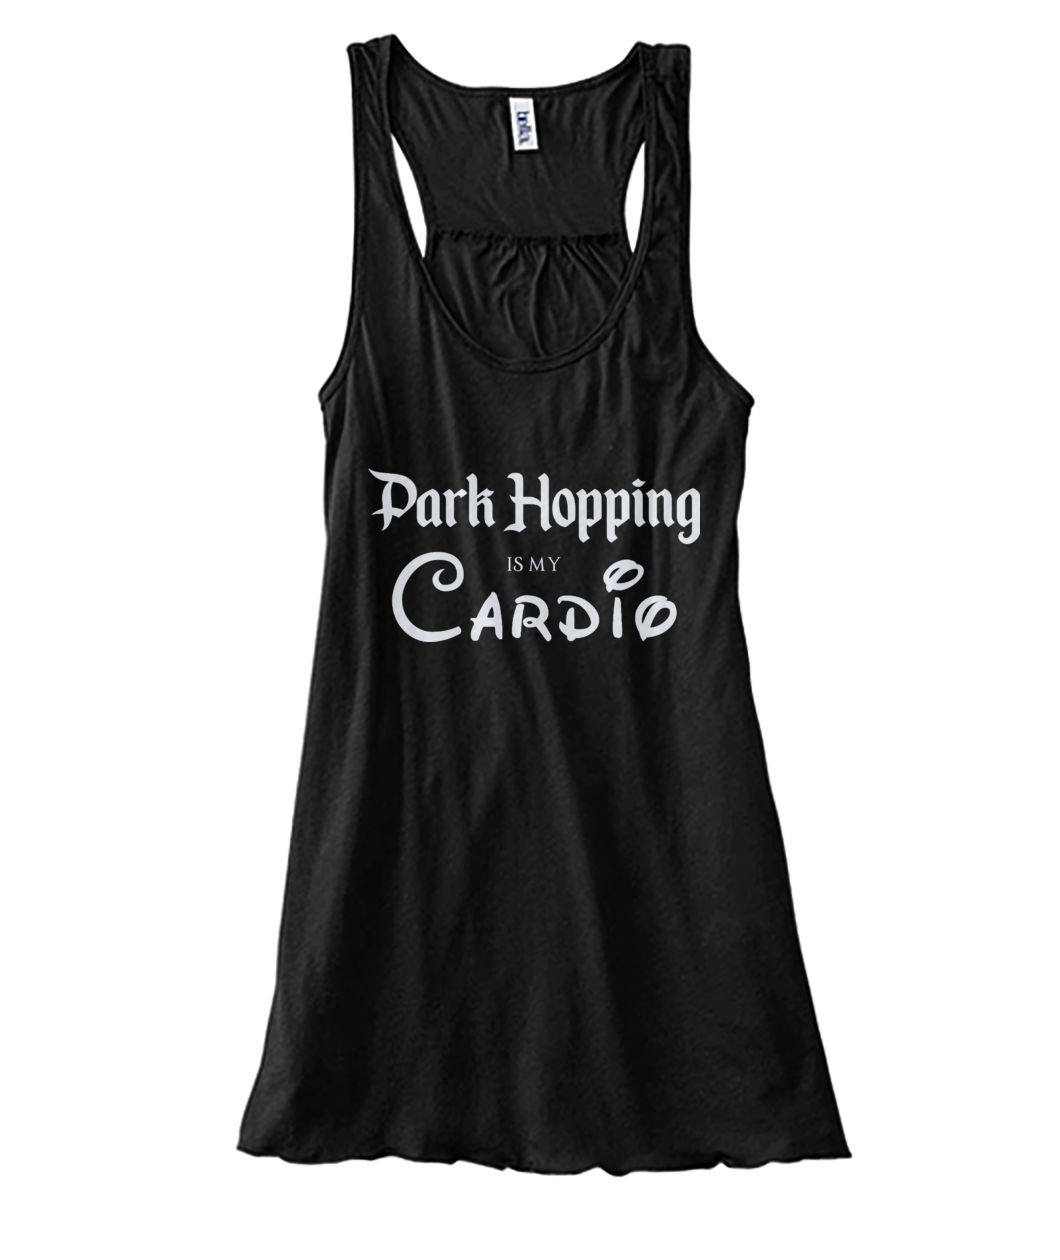 Park Hopping Cardio Women's Flowy Tank - Light